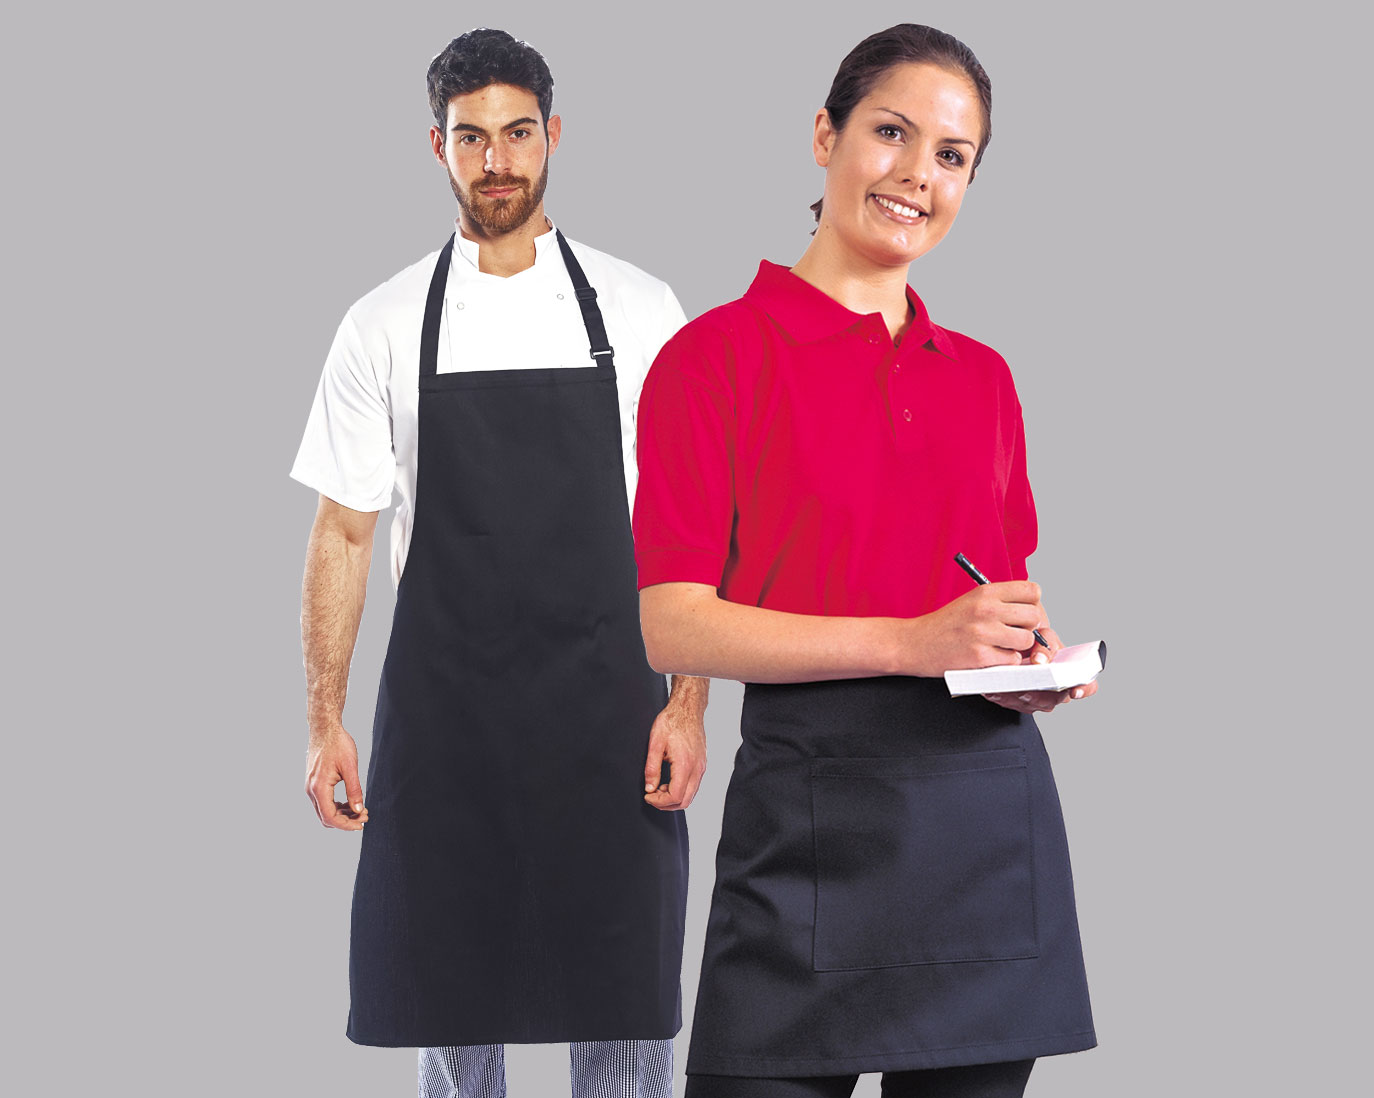 Chef's Aprons & Accessories